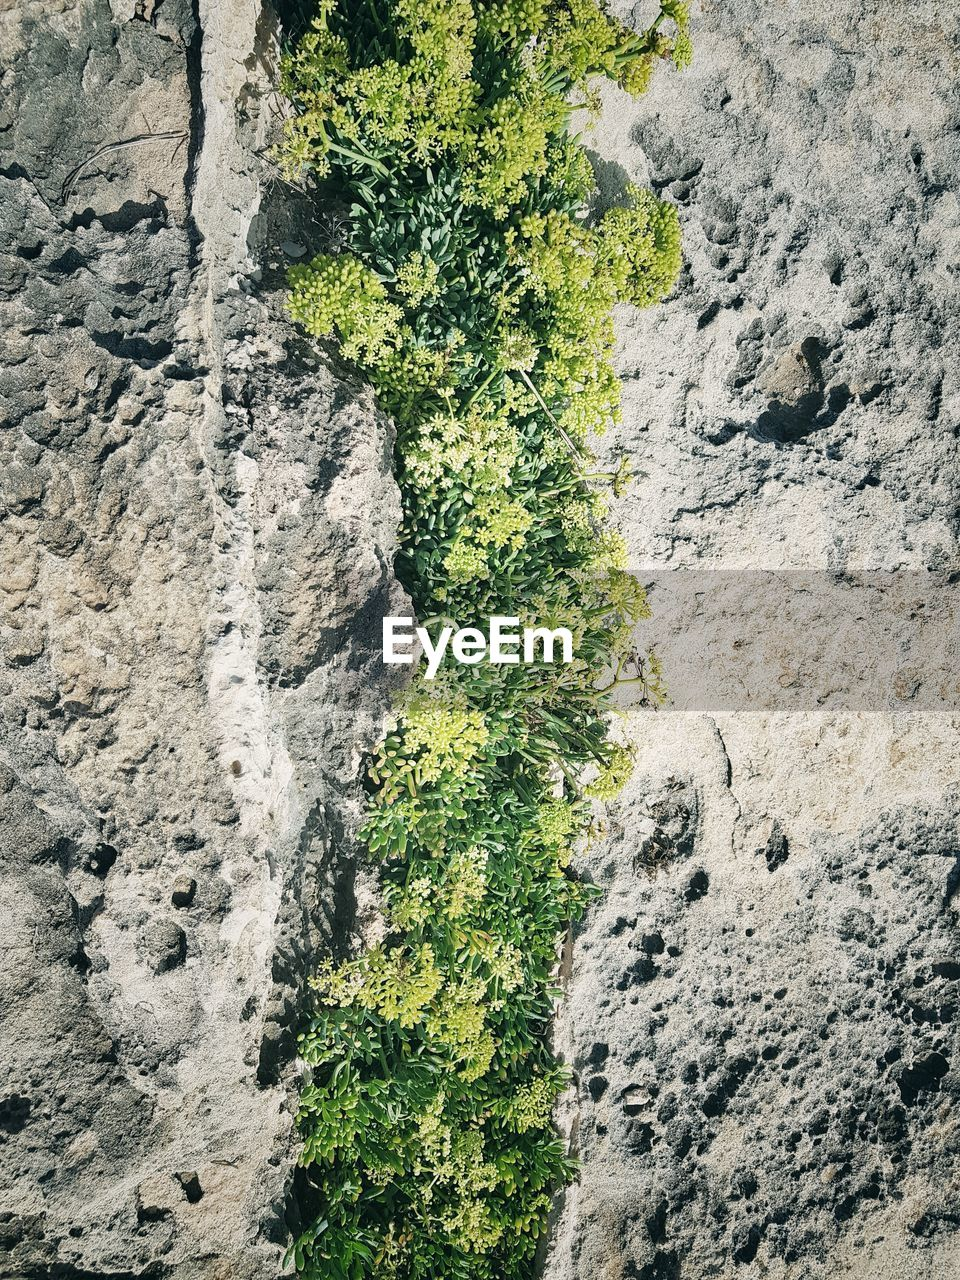 High angle view of plants growing on rock formations during sunny day